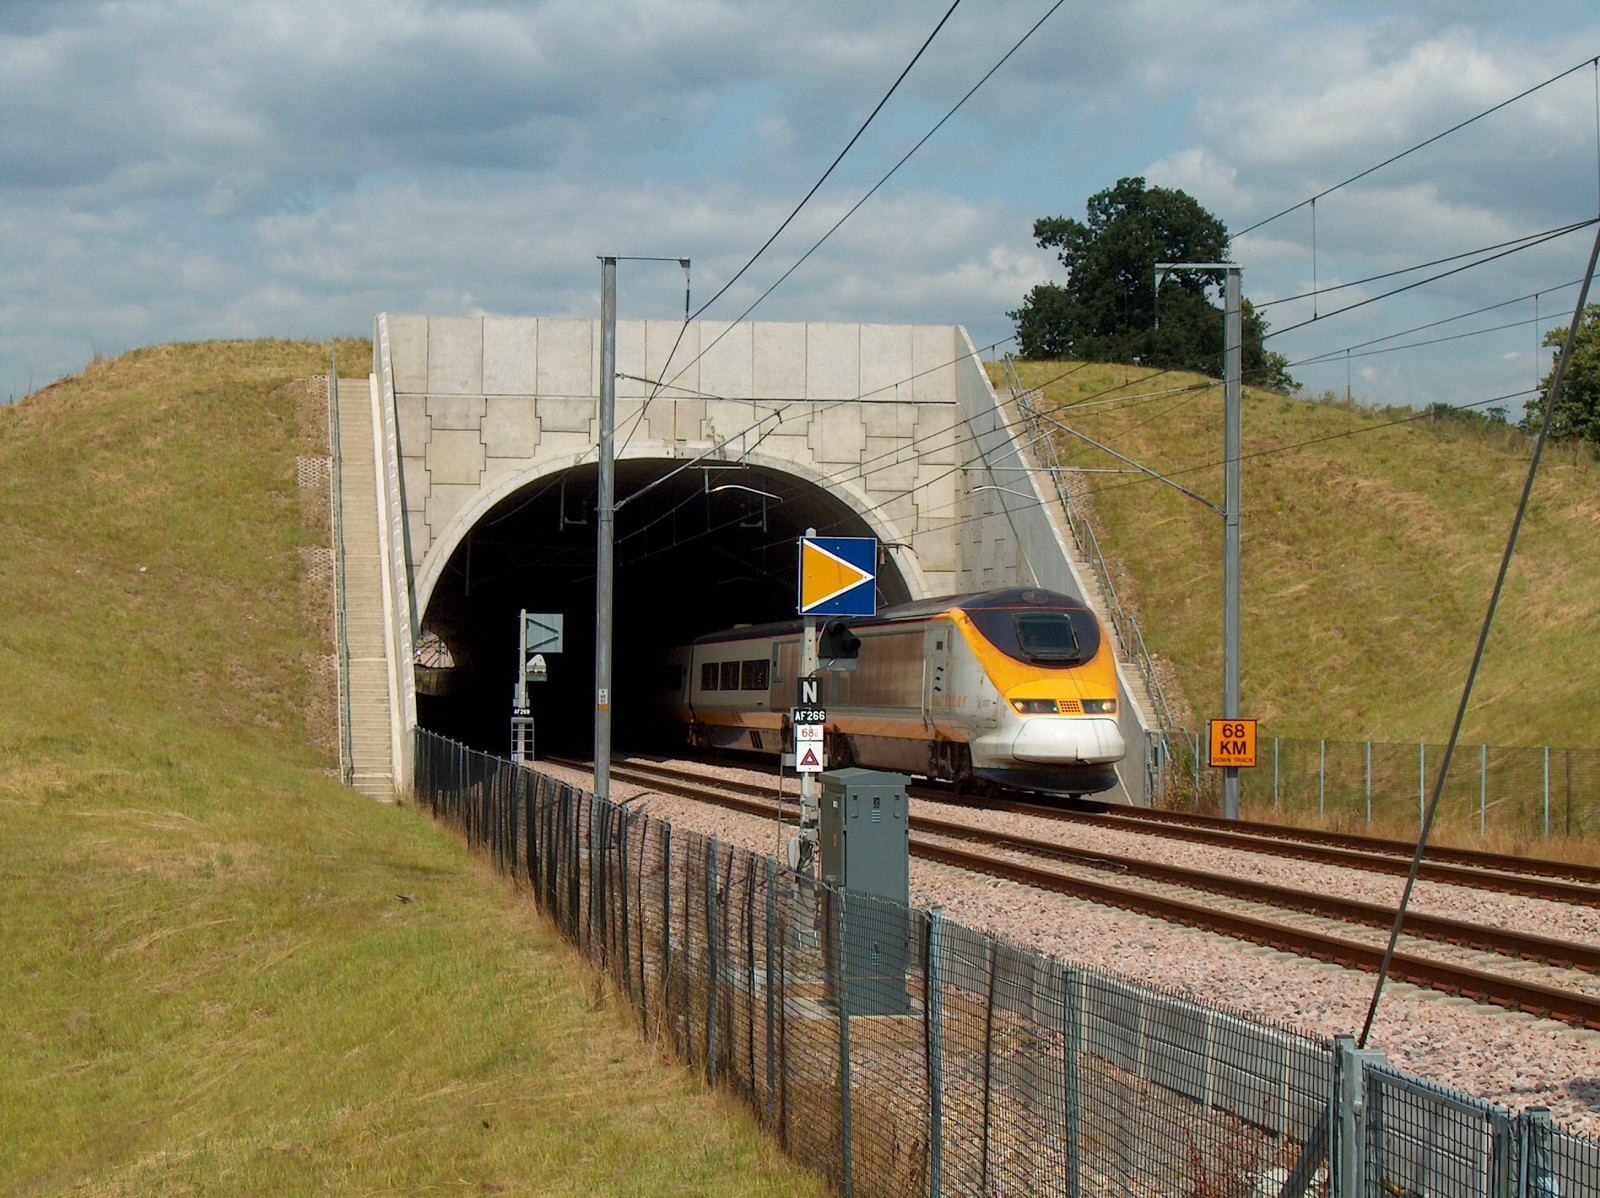 Channel Tunnel Rail link - Contract 420 - Eyhorne Tunnel